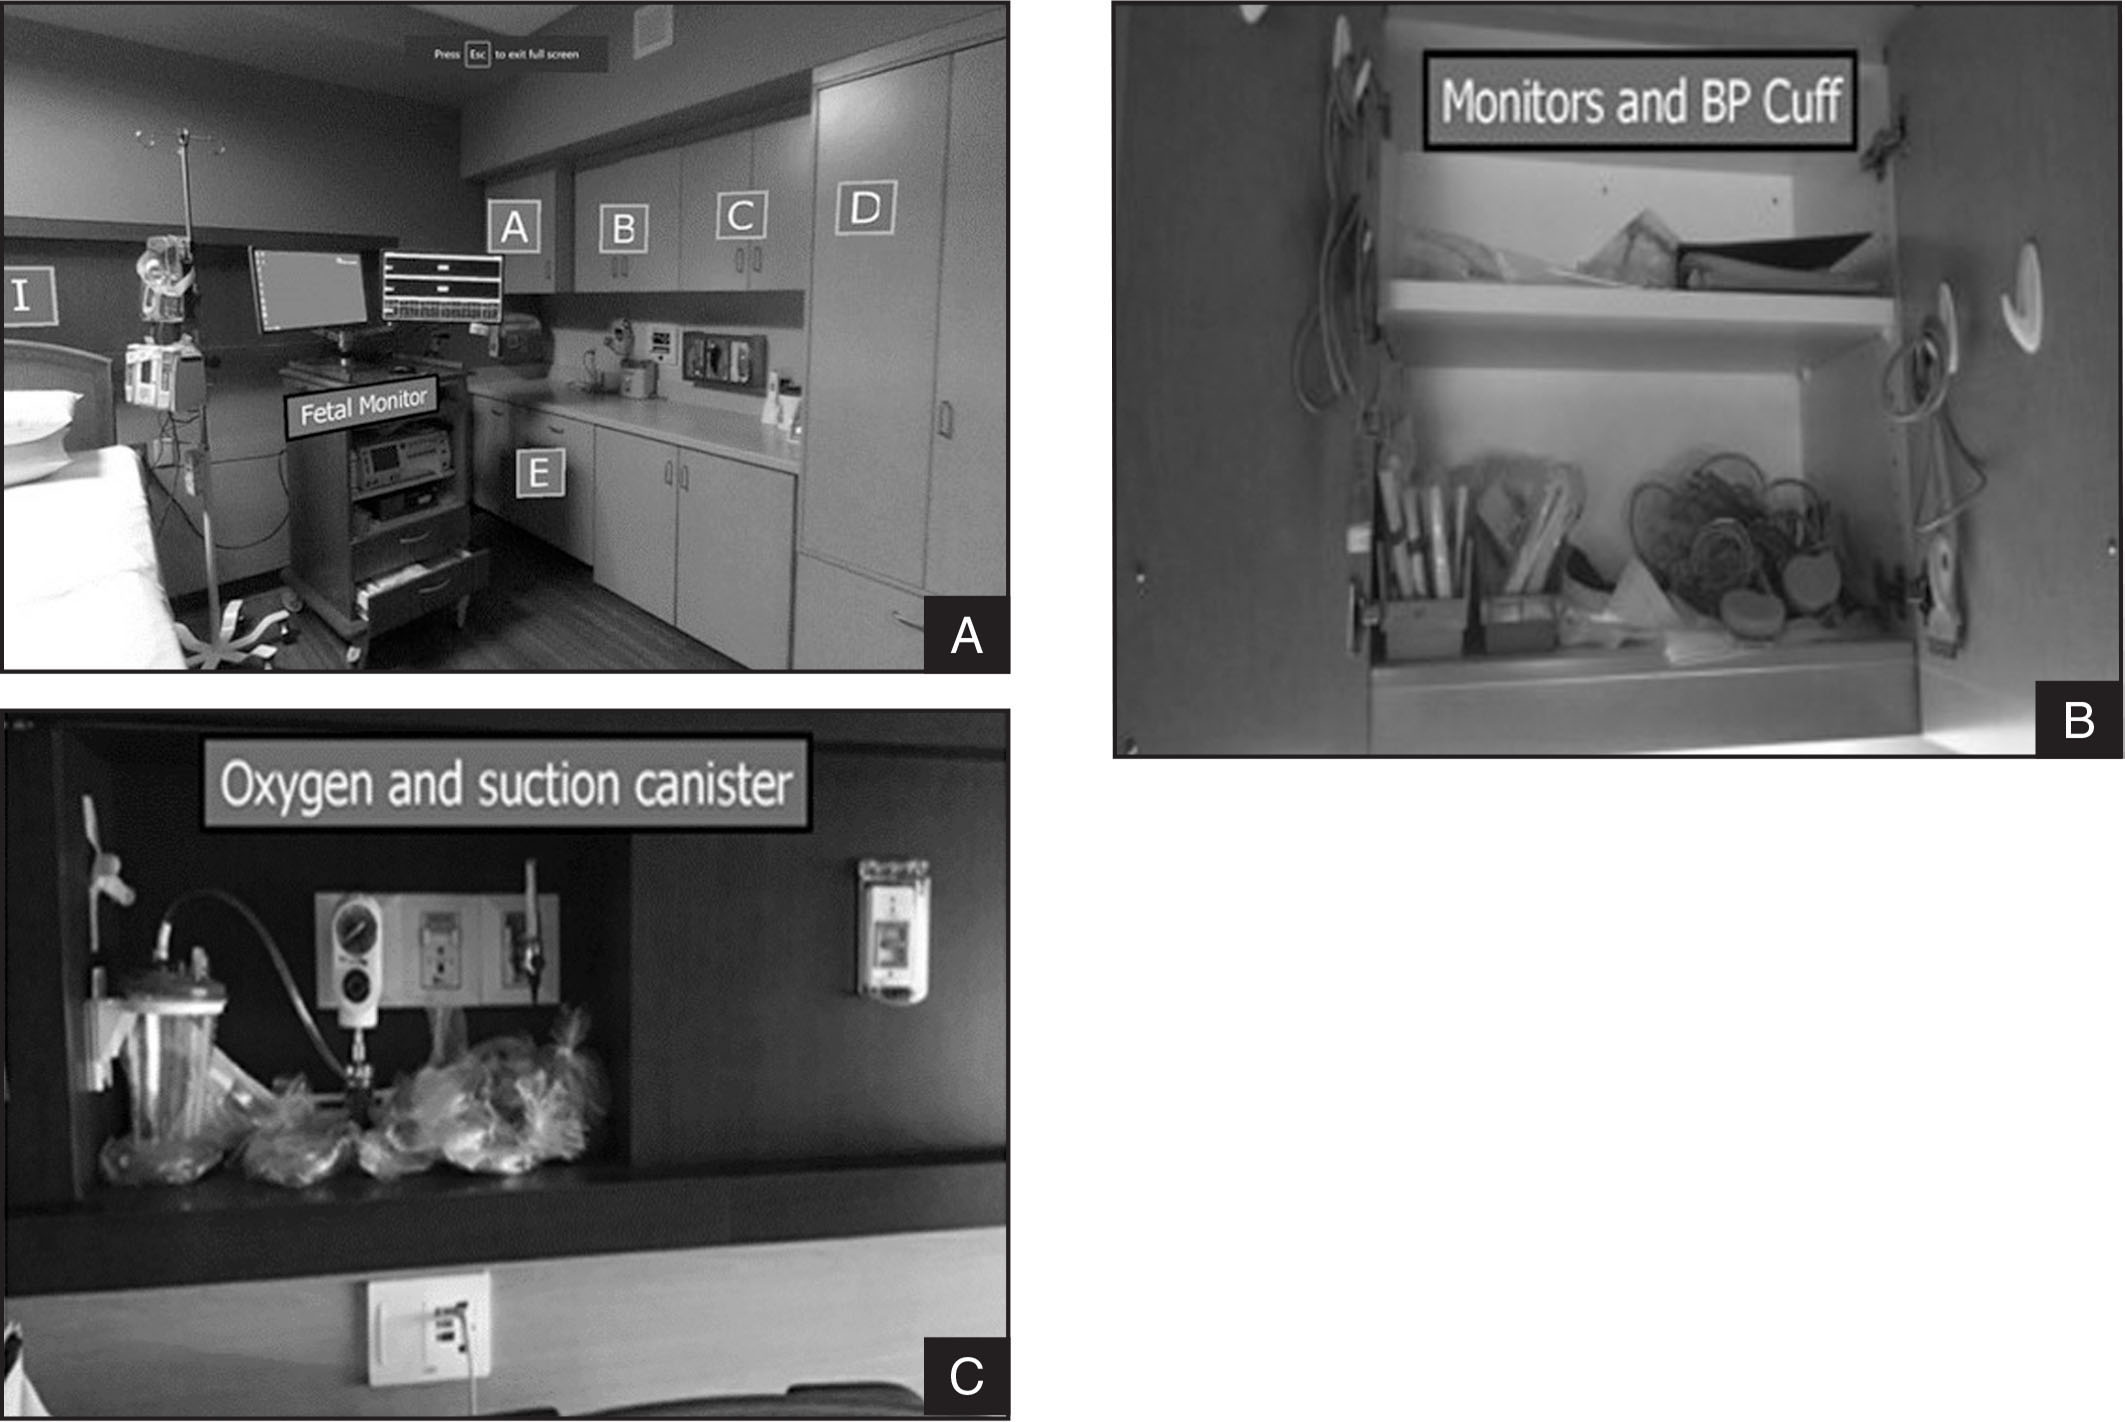 Example of a view of the interactive AR 360° photosphere (A). The student actively navigates the room, and when labeled items are clicked on, the area will open. In the photograph, when cabinet C is opened, the monitoring equipment needed in the clinical area is found (B). When cabinet I behind the bed is opened, the student is able to view respiratory equipment (C).